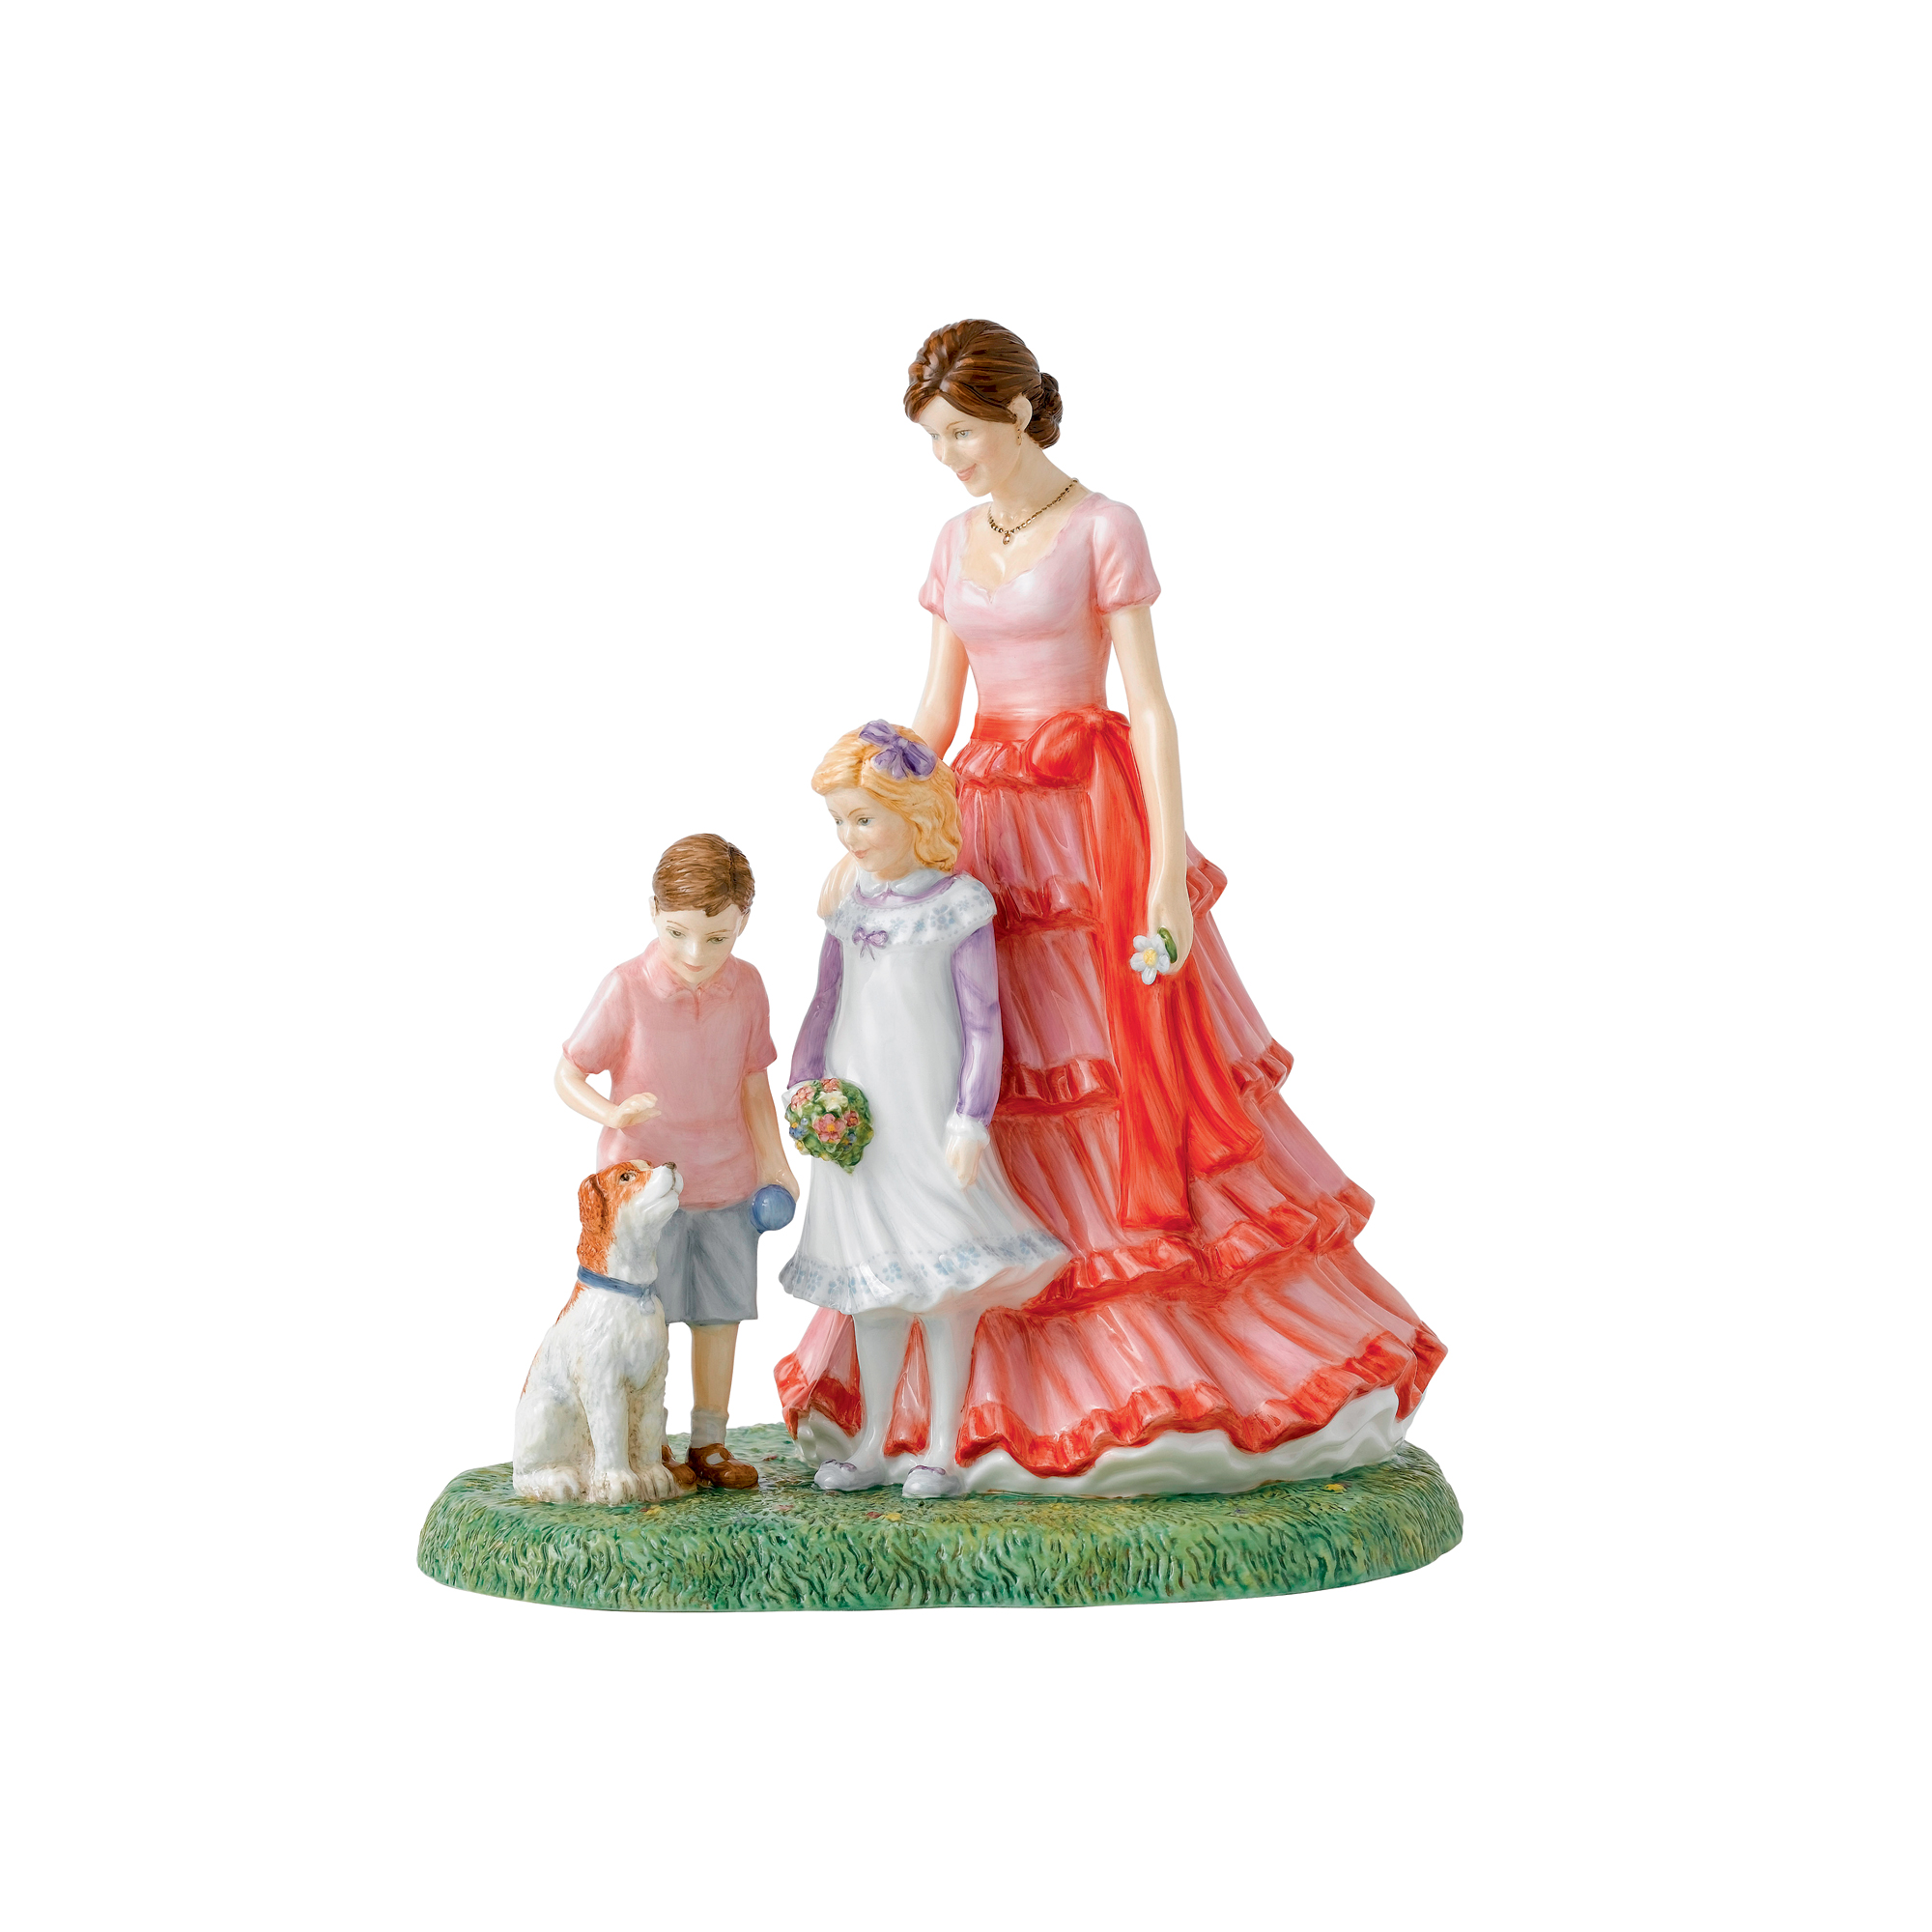 Family Outing HN5789 - Royal Doulton Figurine